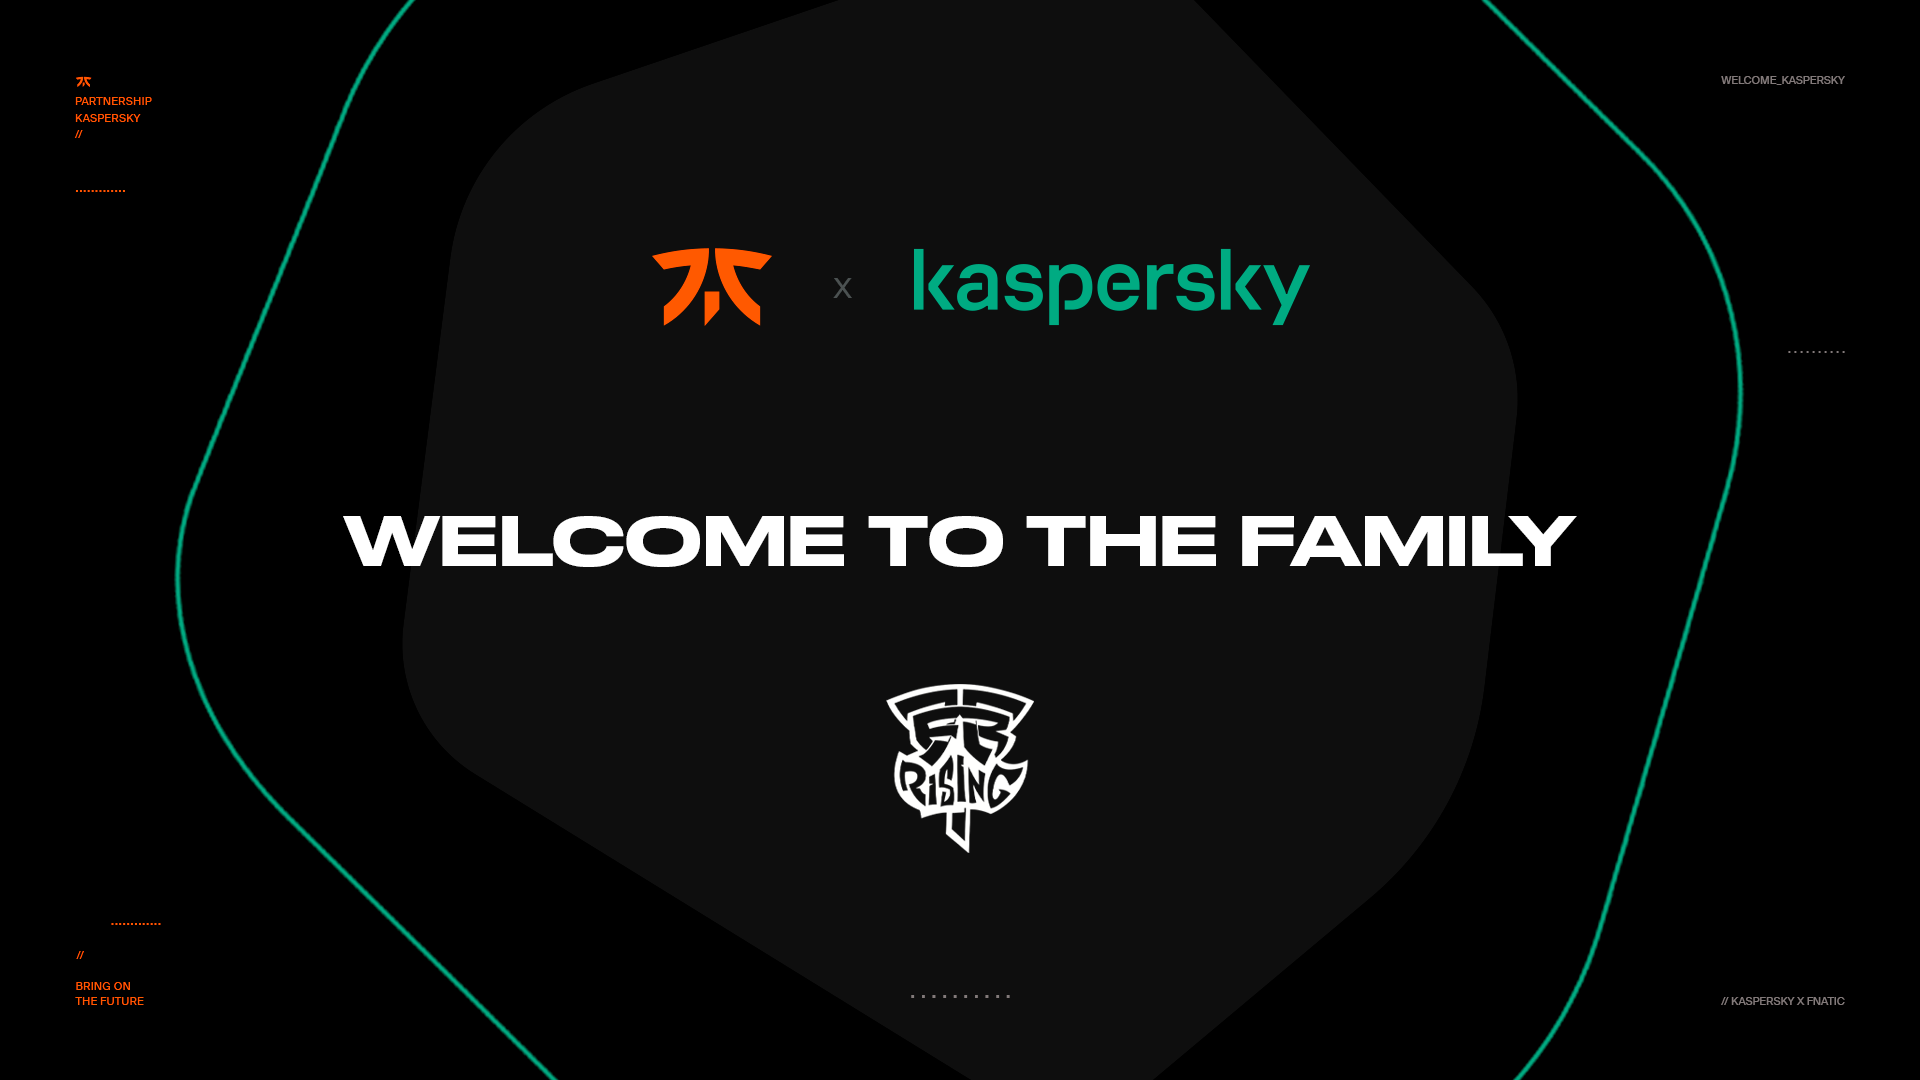 team-play-kaspersky-and-fnatic-announce-global-partnership.png